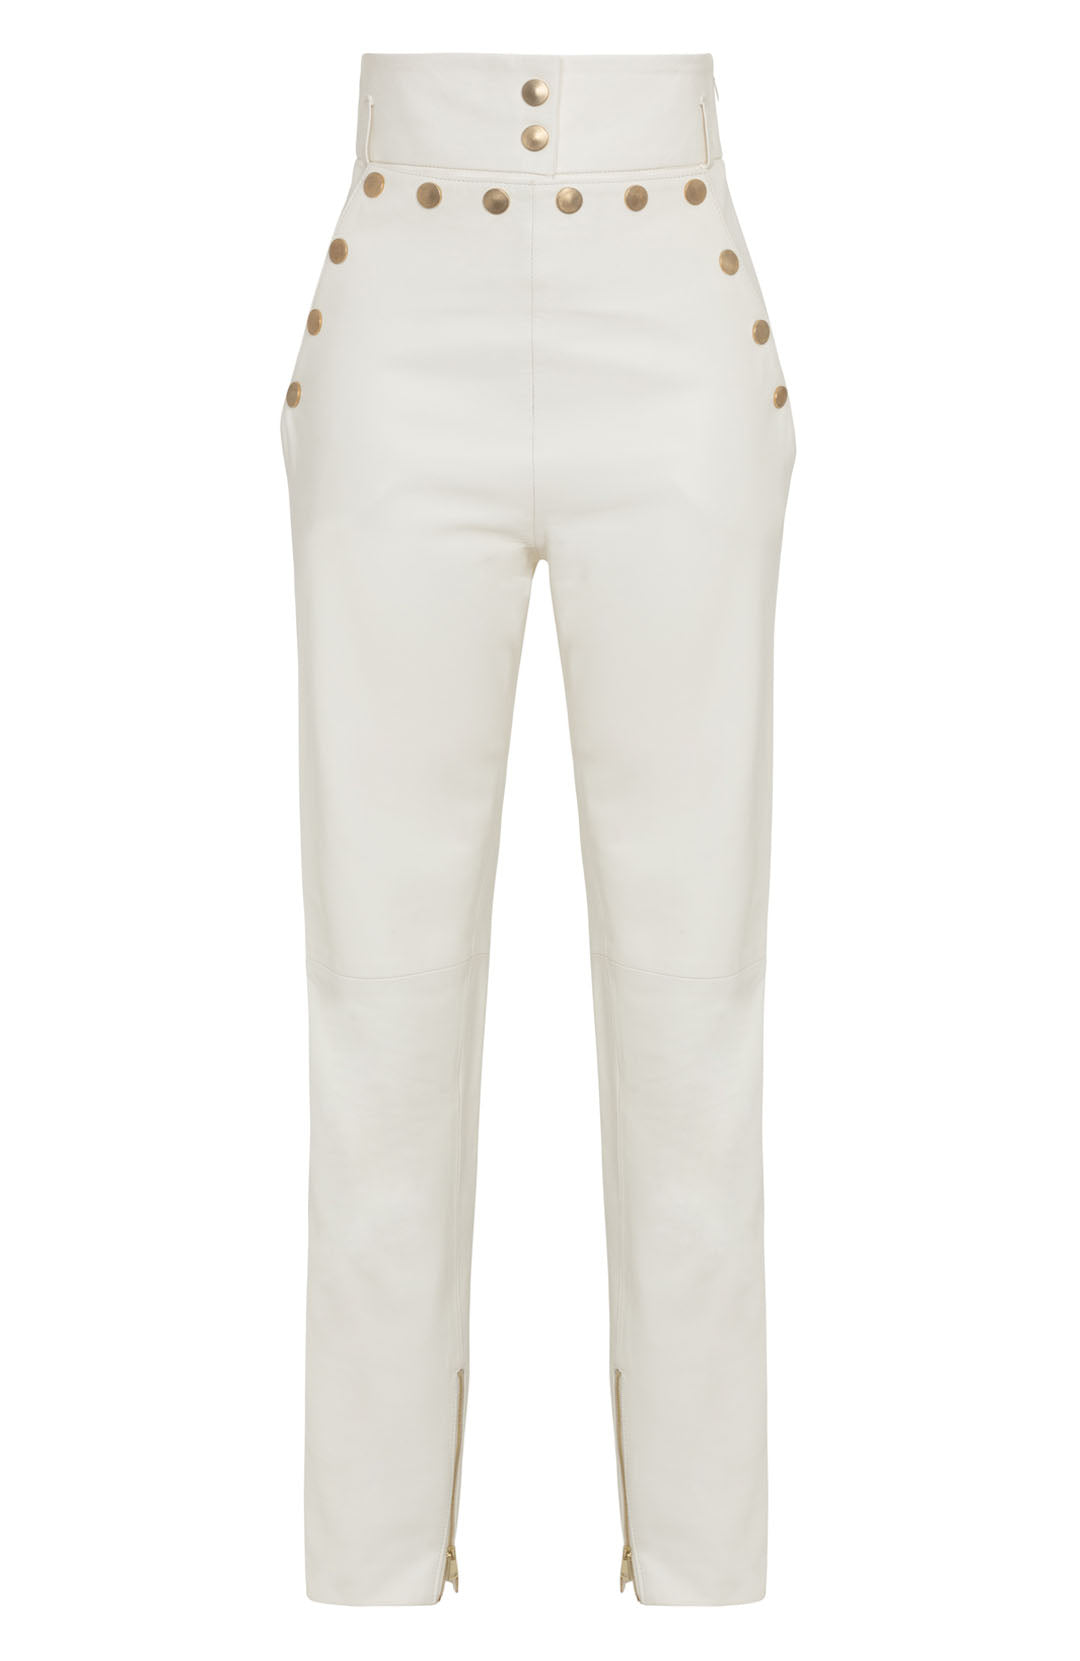 HIGH WAIST STRETCH LEATHER PANT